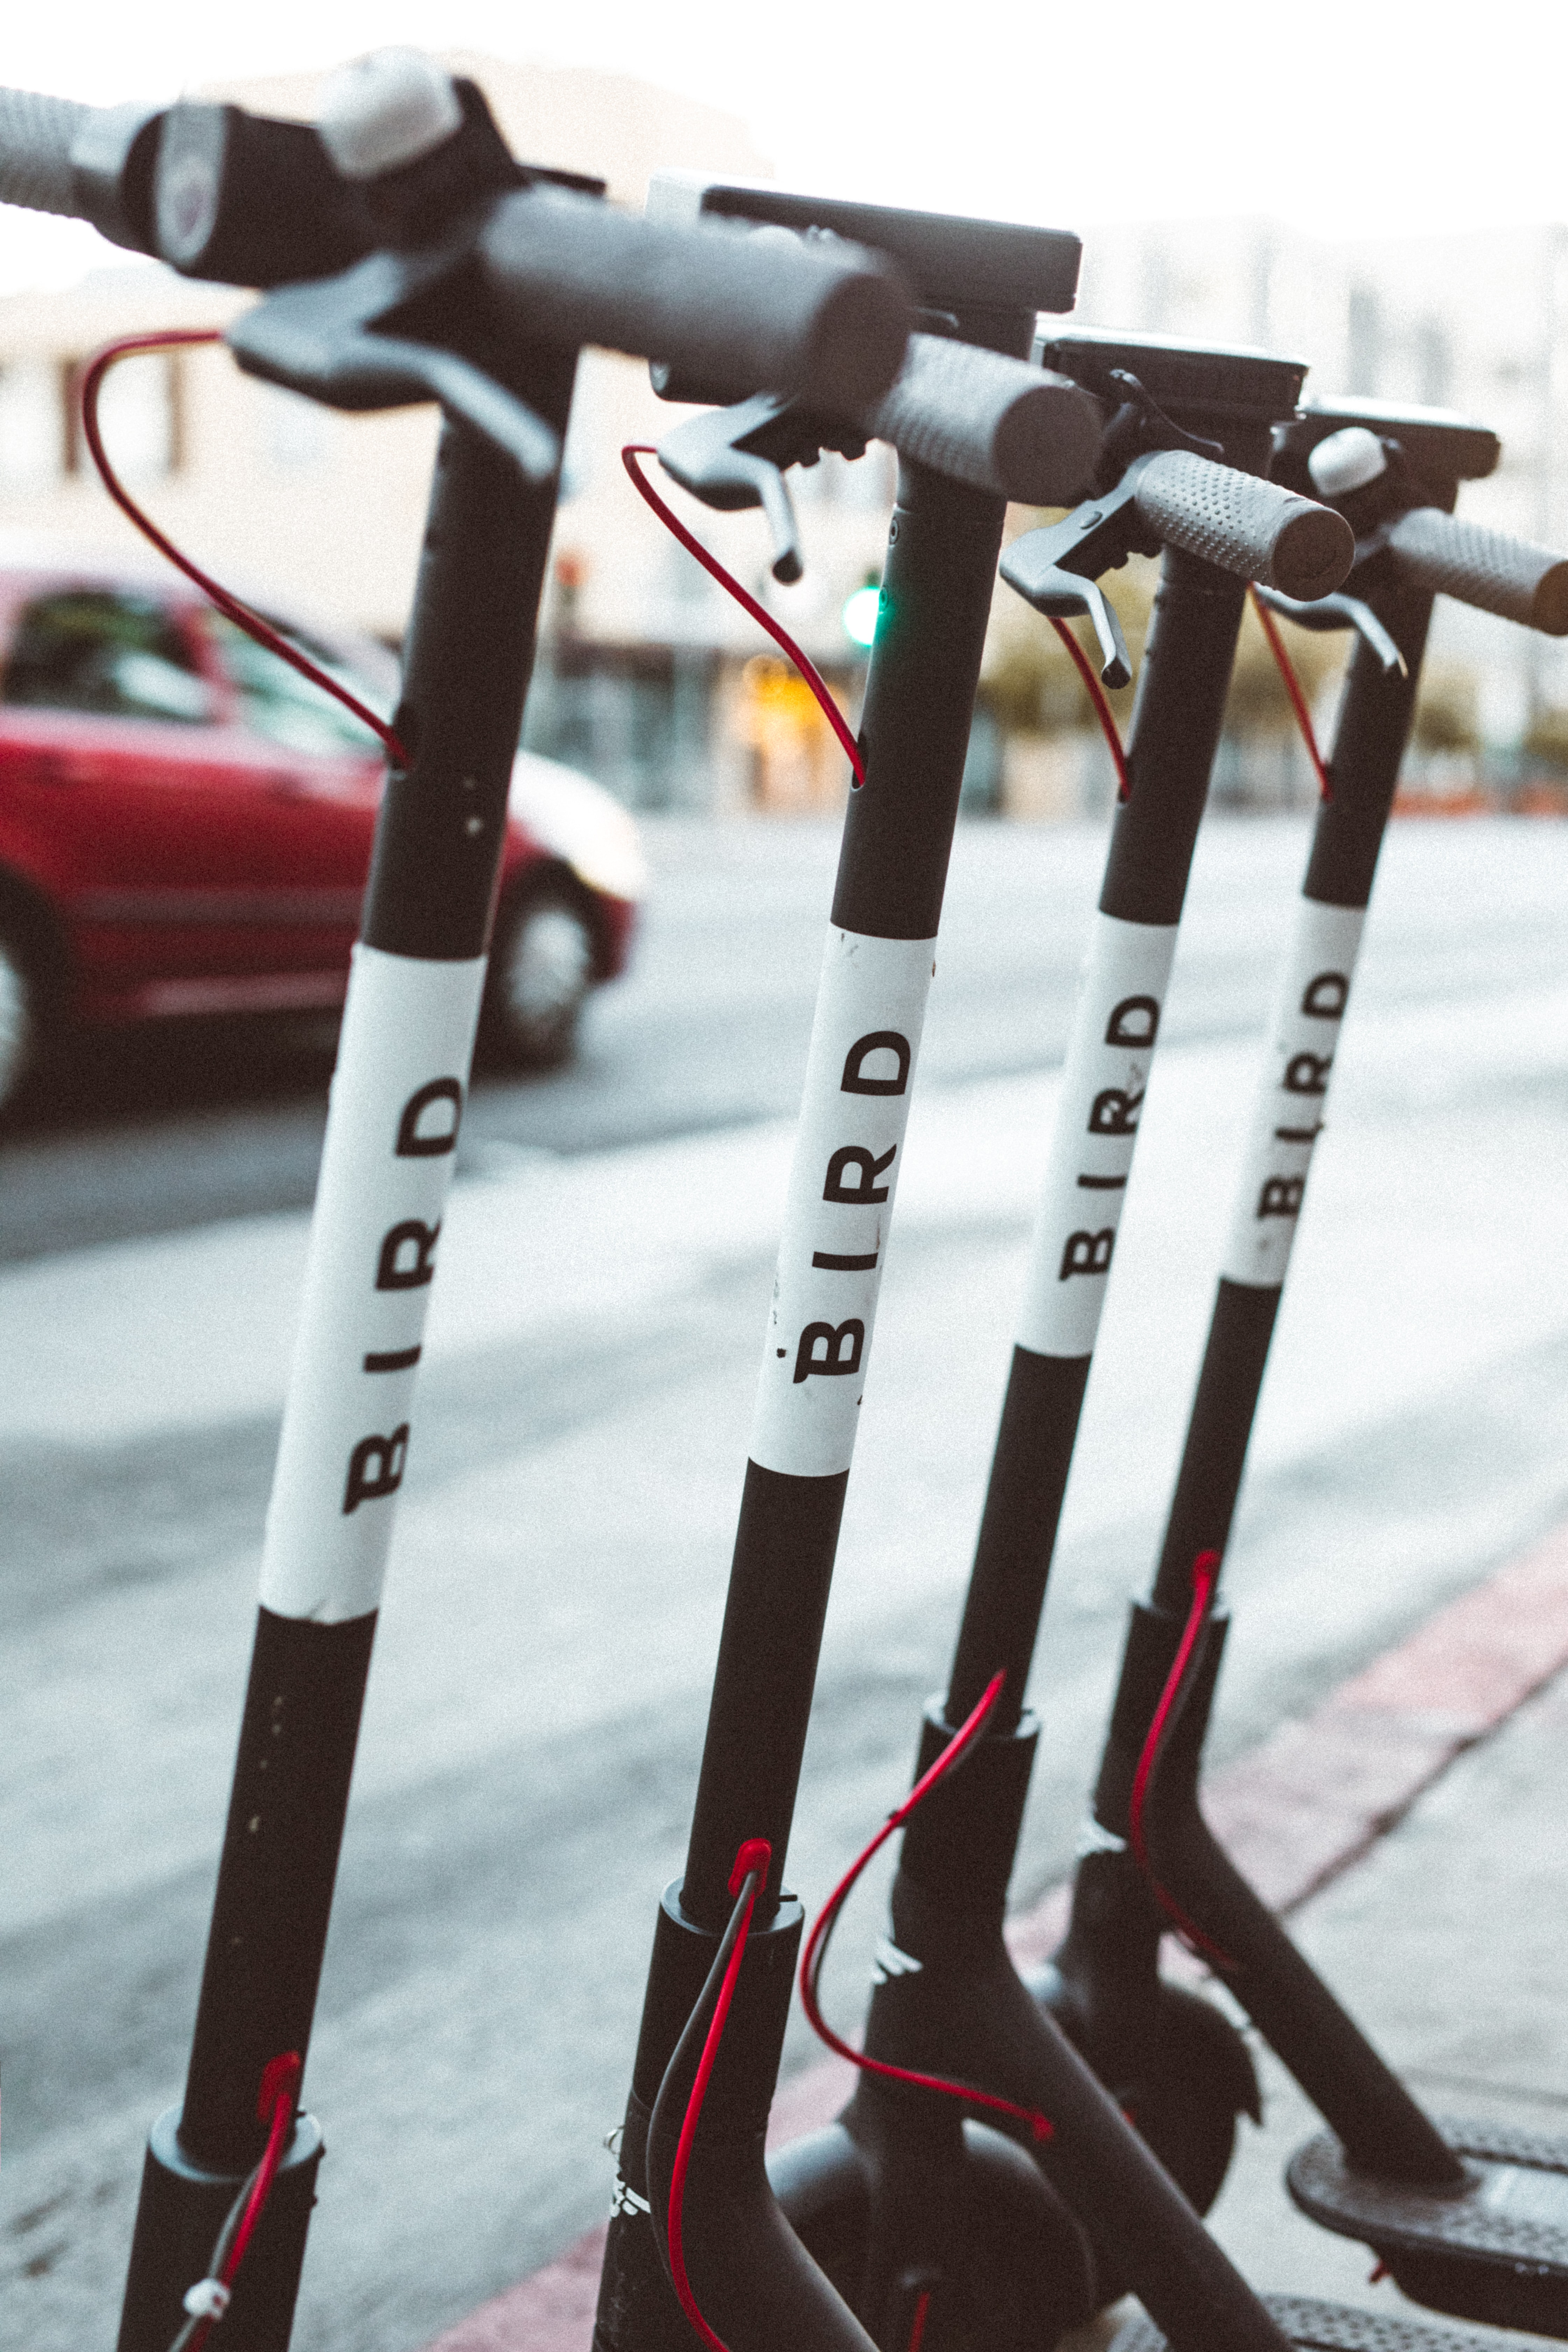 selective focus photo of four Bird electric scooters